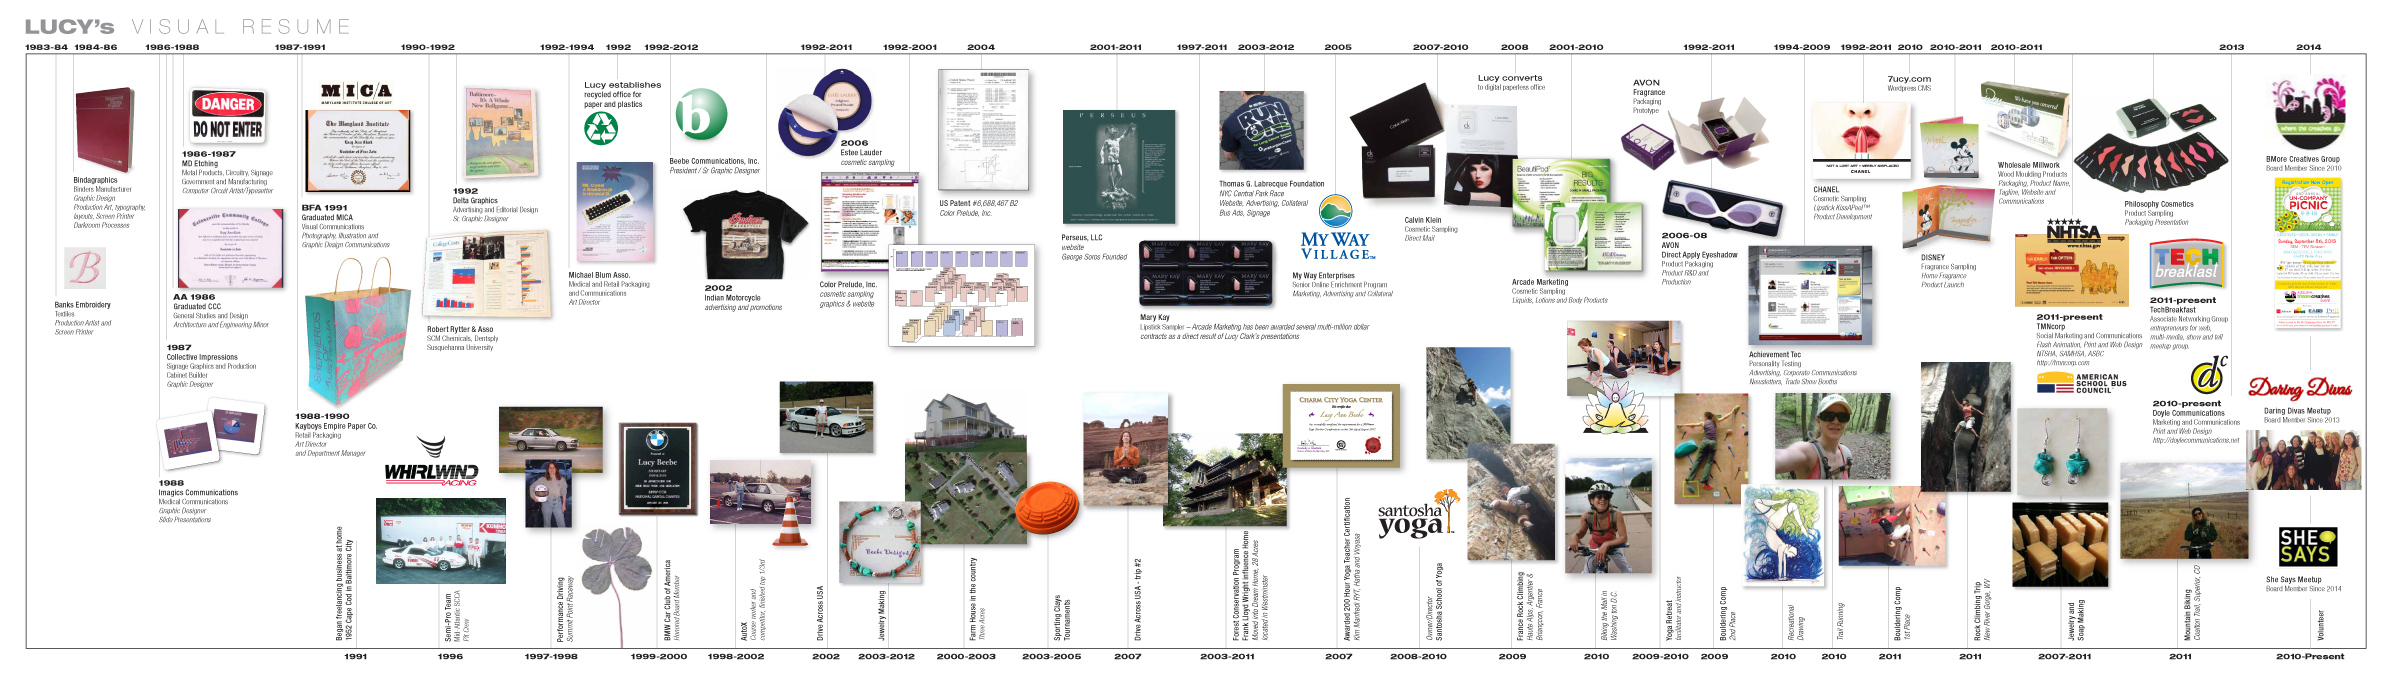 Lucy Clark Visual Resume Timeline 2014